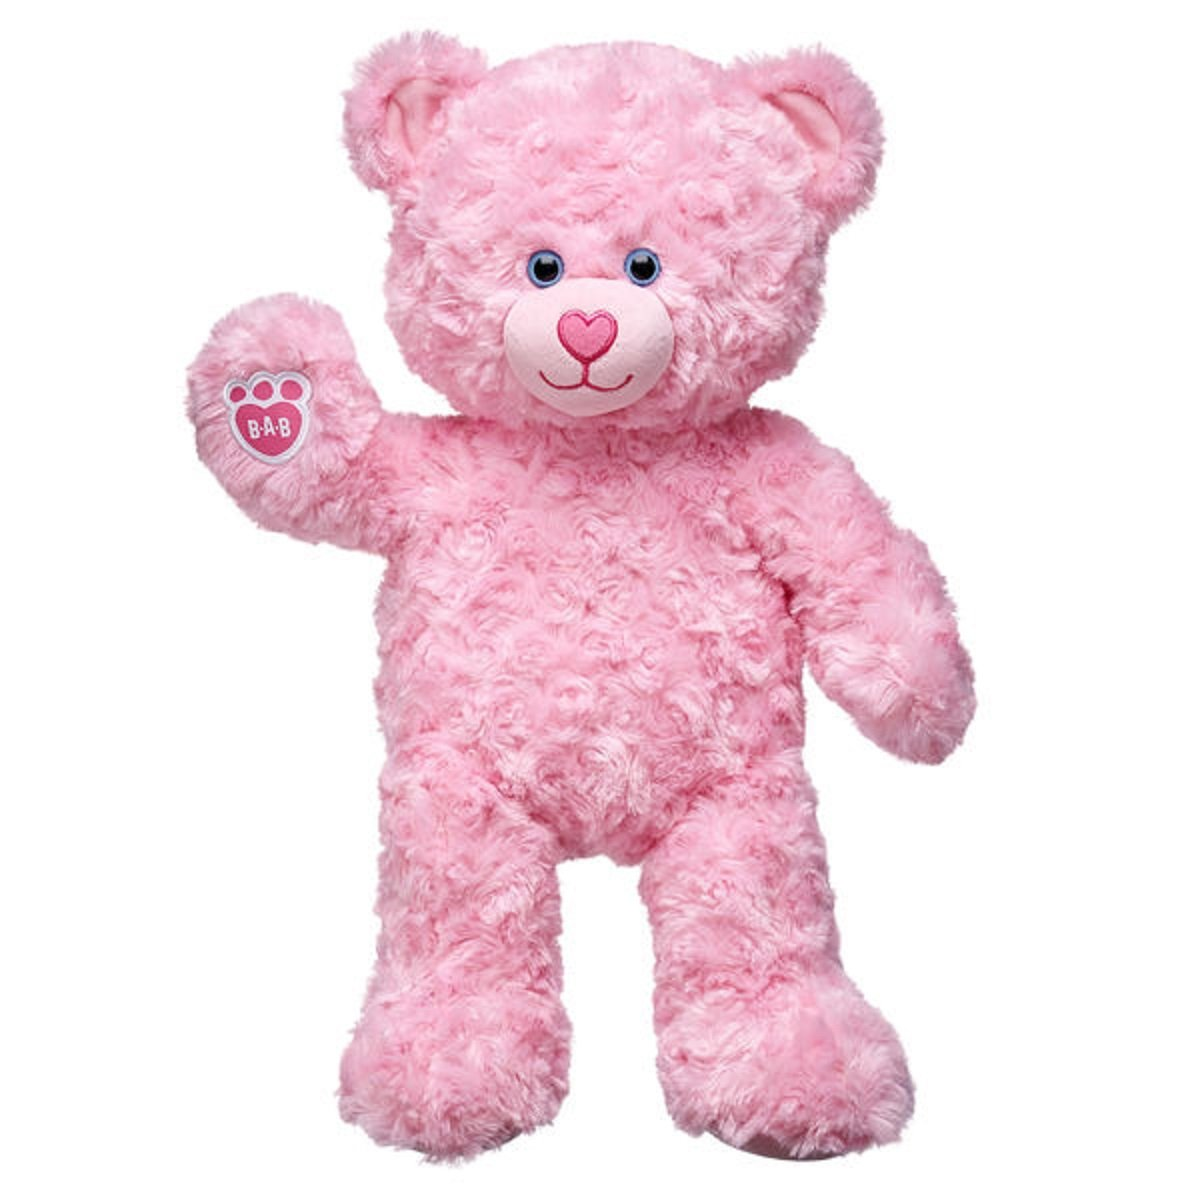 300409cdd73 Amazon.com  Build-a-Bear Workshop 16 in. Pink Cuddles Teddy Bear  Toys    Games